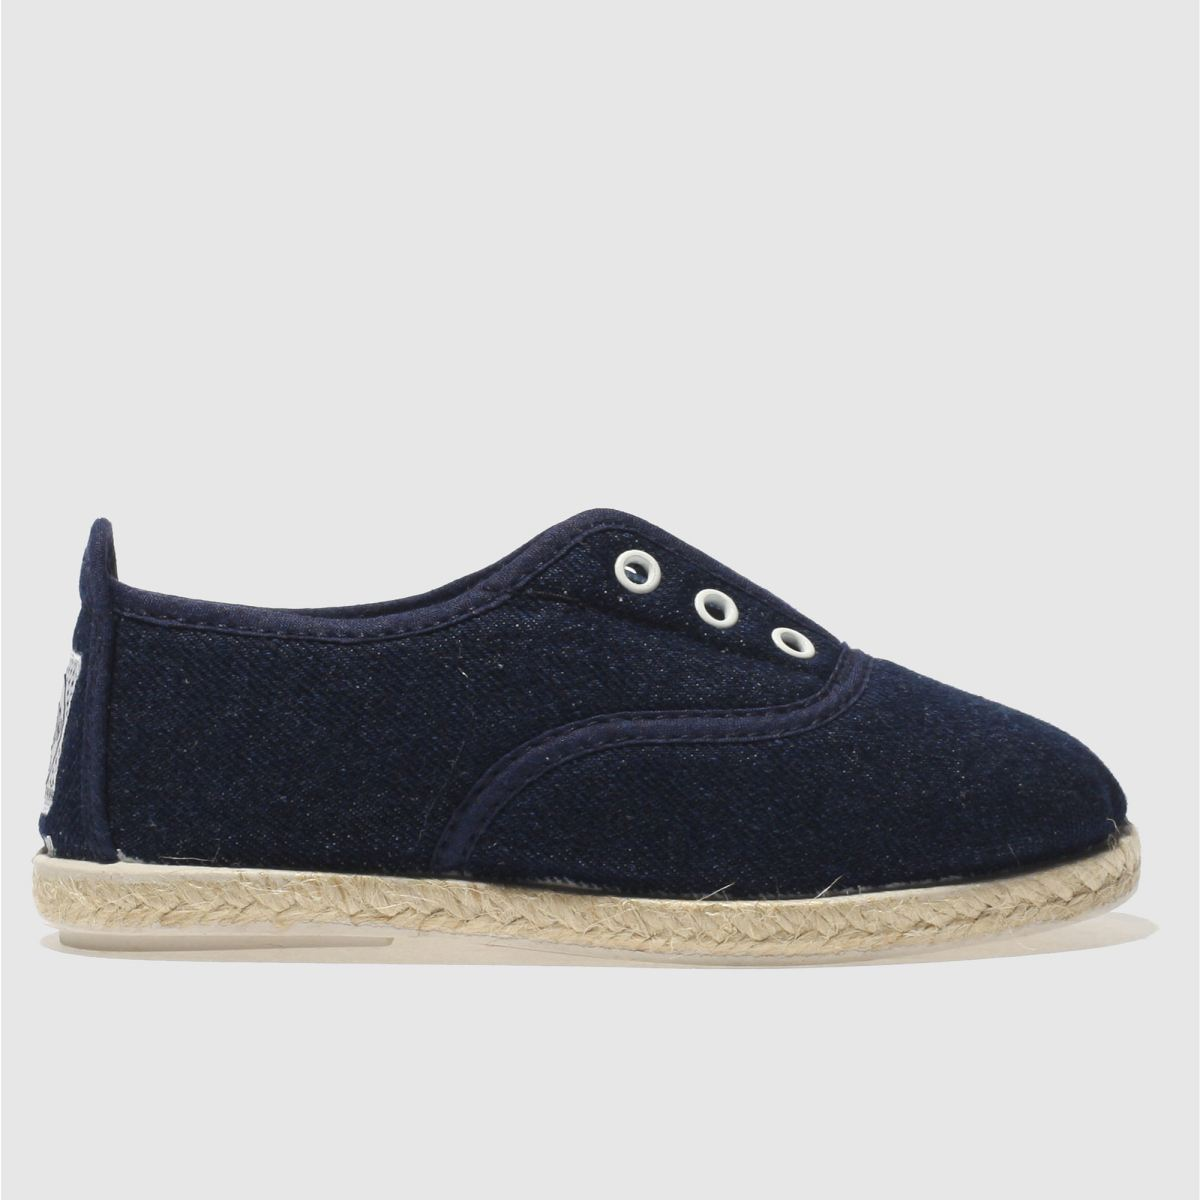 Flossy Flossy Navy Goloso Toddler Shoes